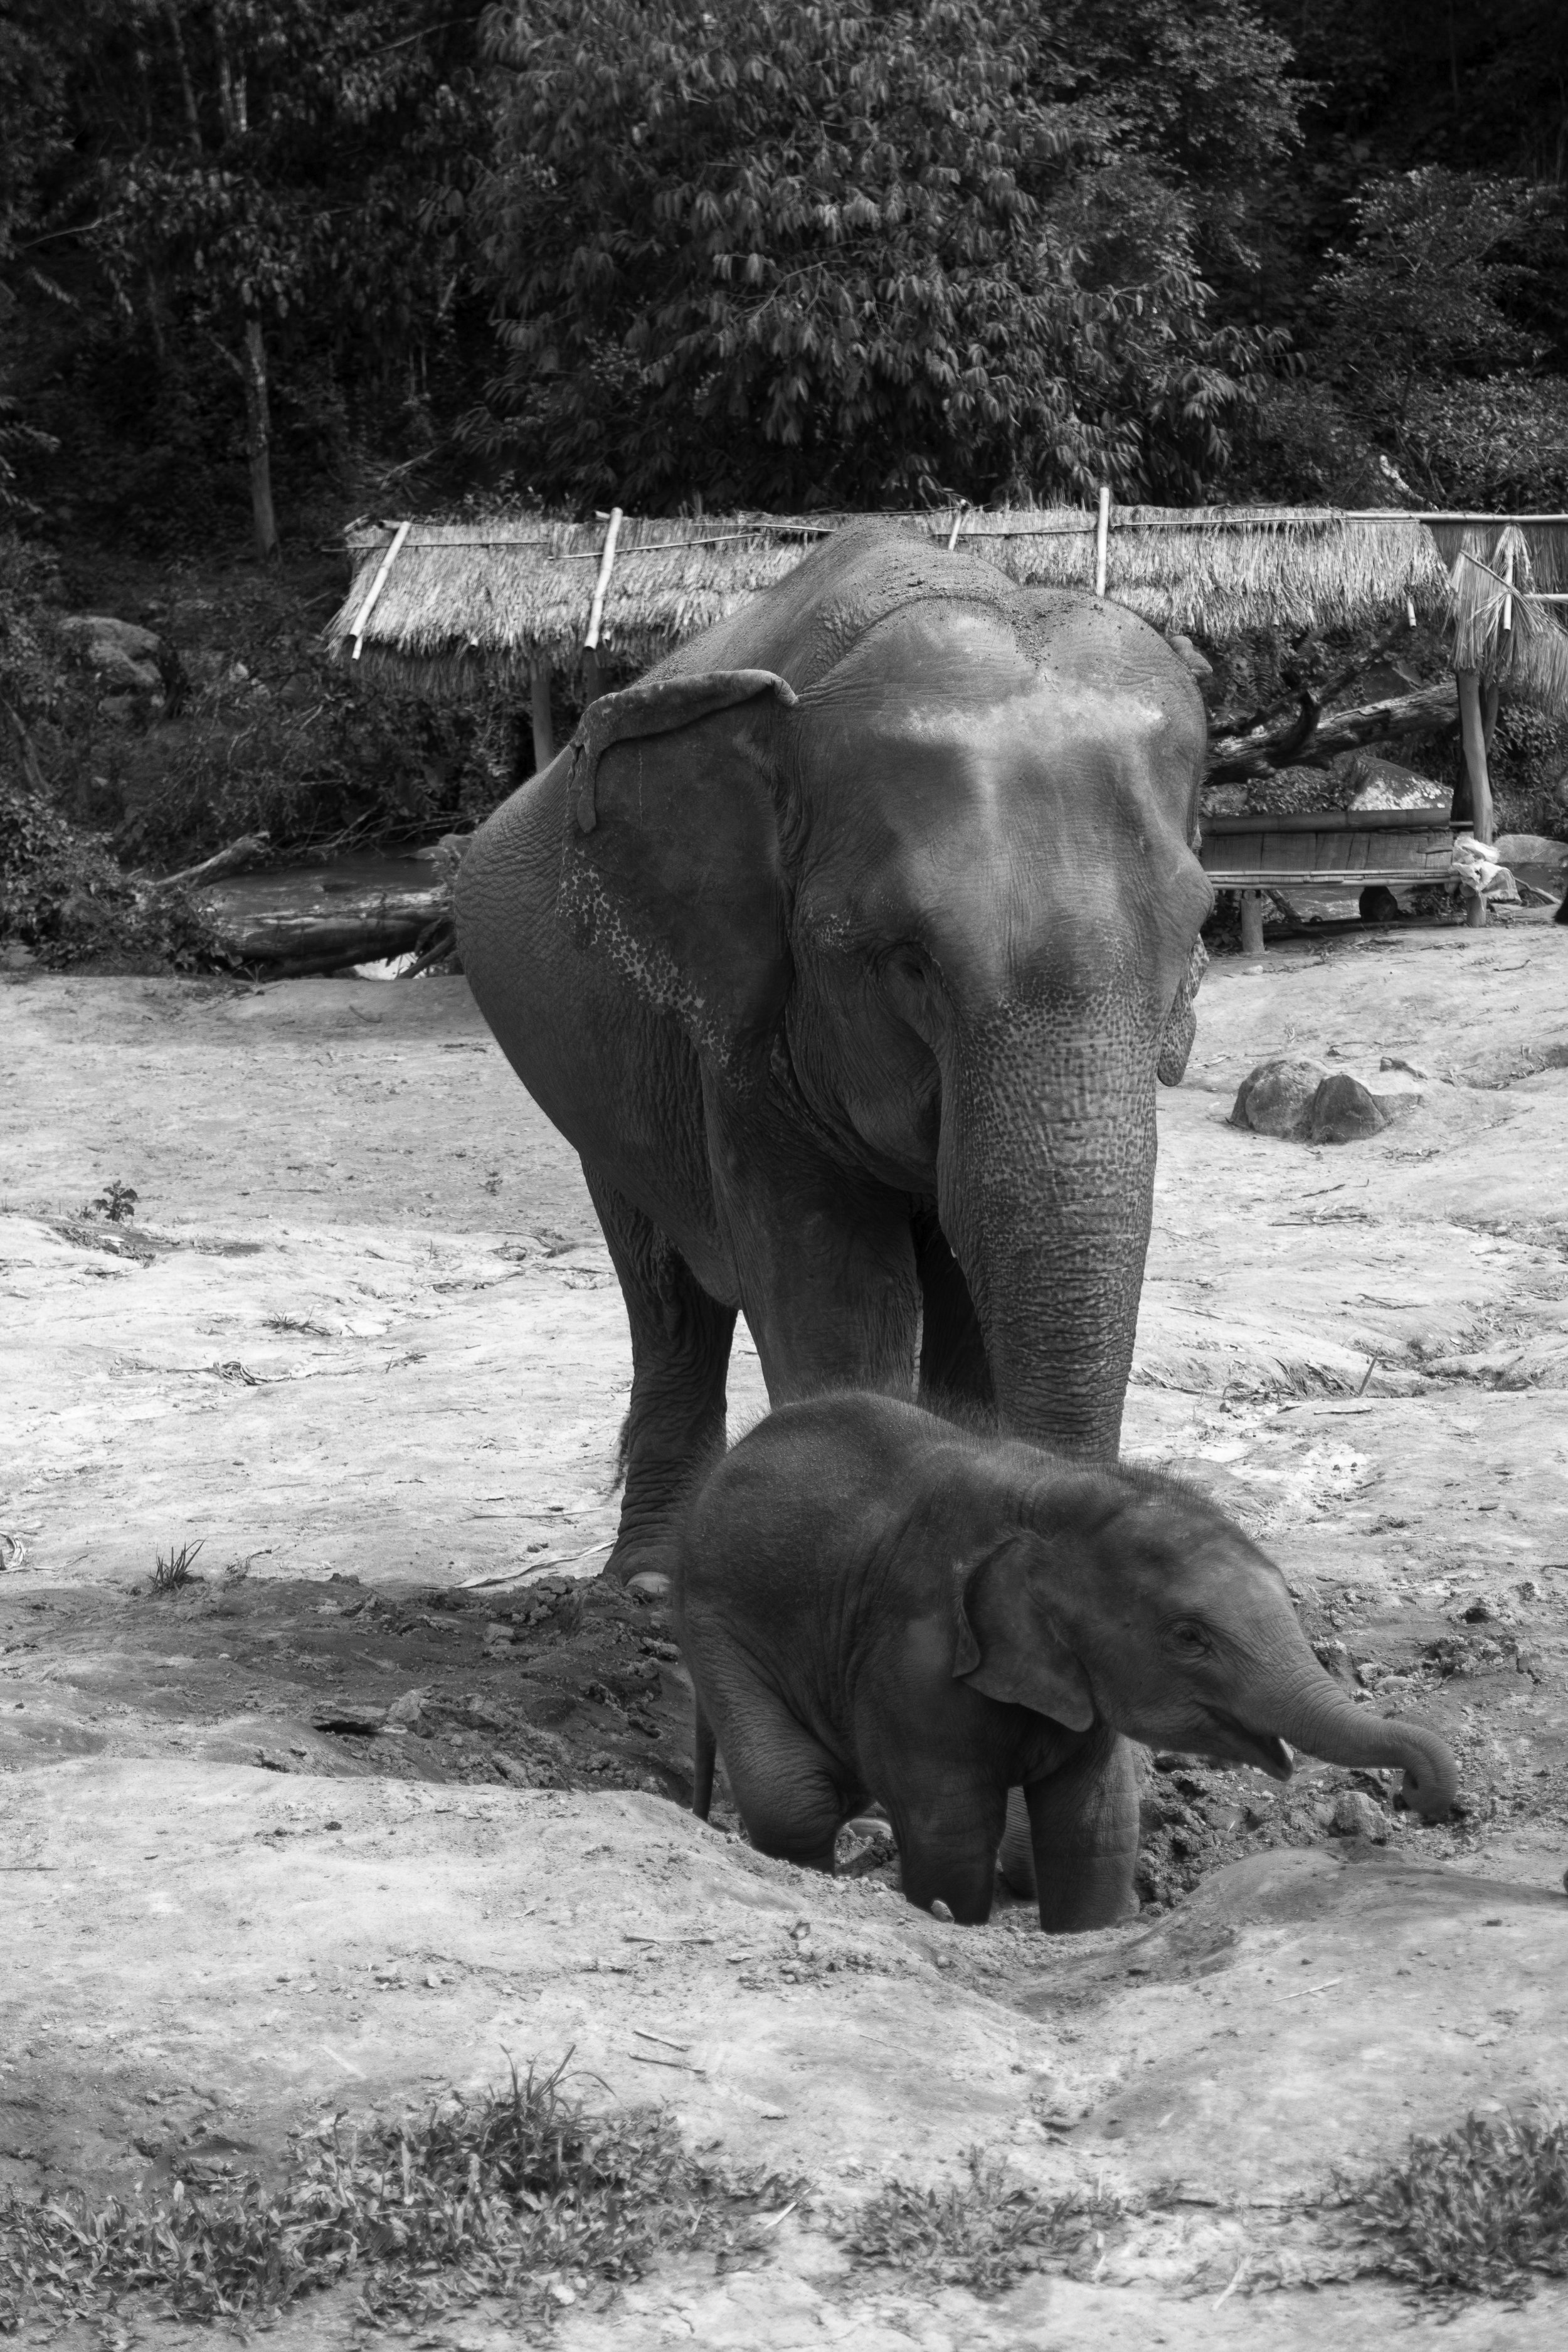 The-world-of-elephants-black-and-white-Thailand-two-of-a-kind.jpg